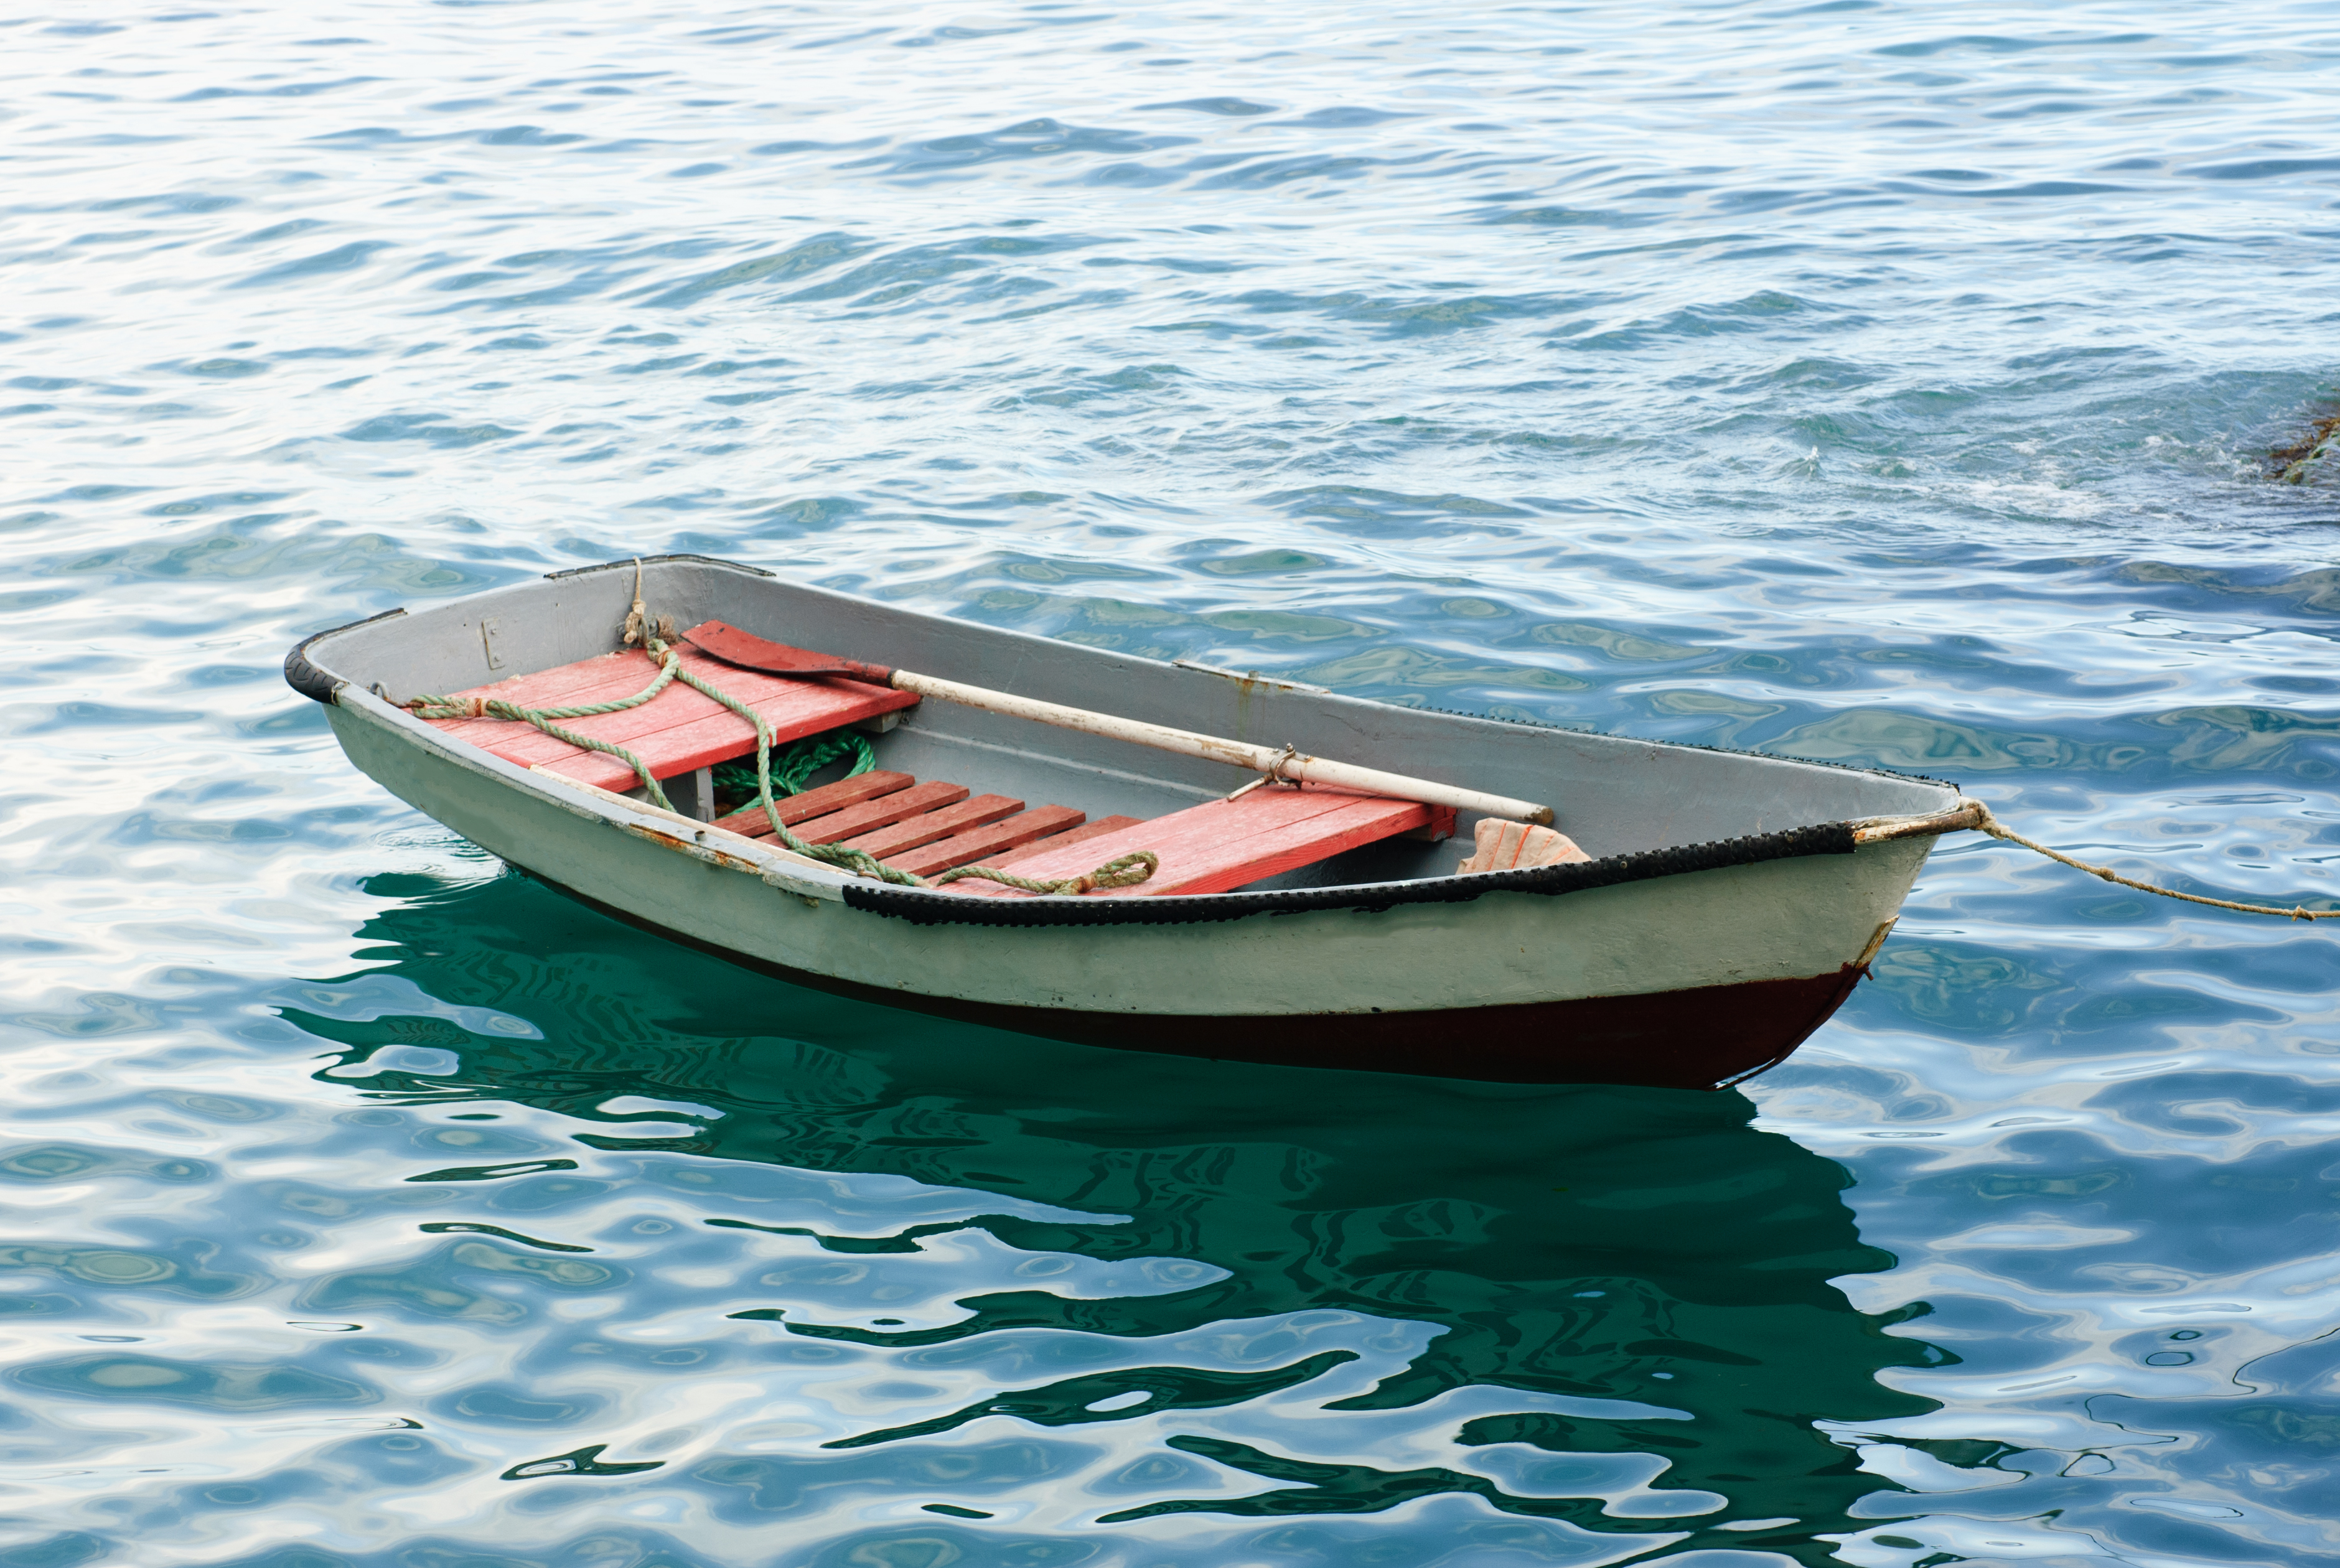 Weatherby Consulting   Lifeboat with paddle. Old wooden boat